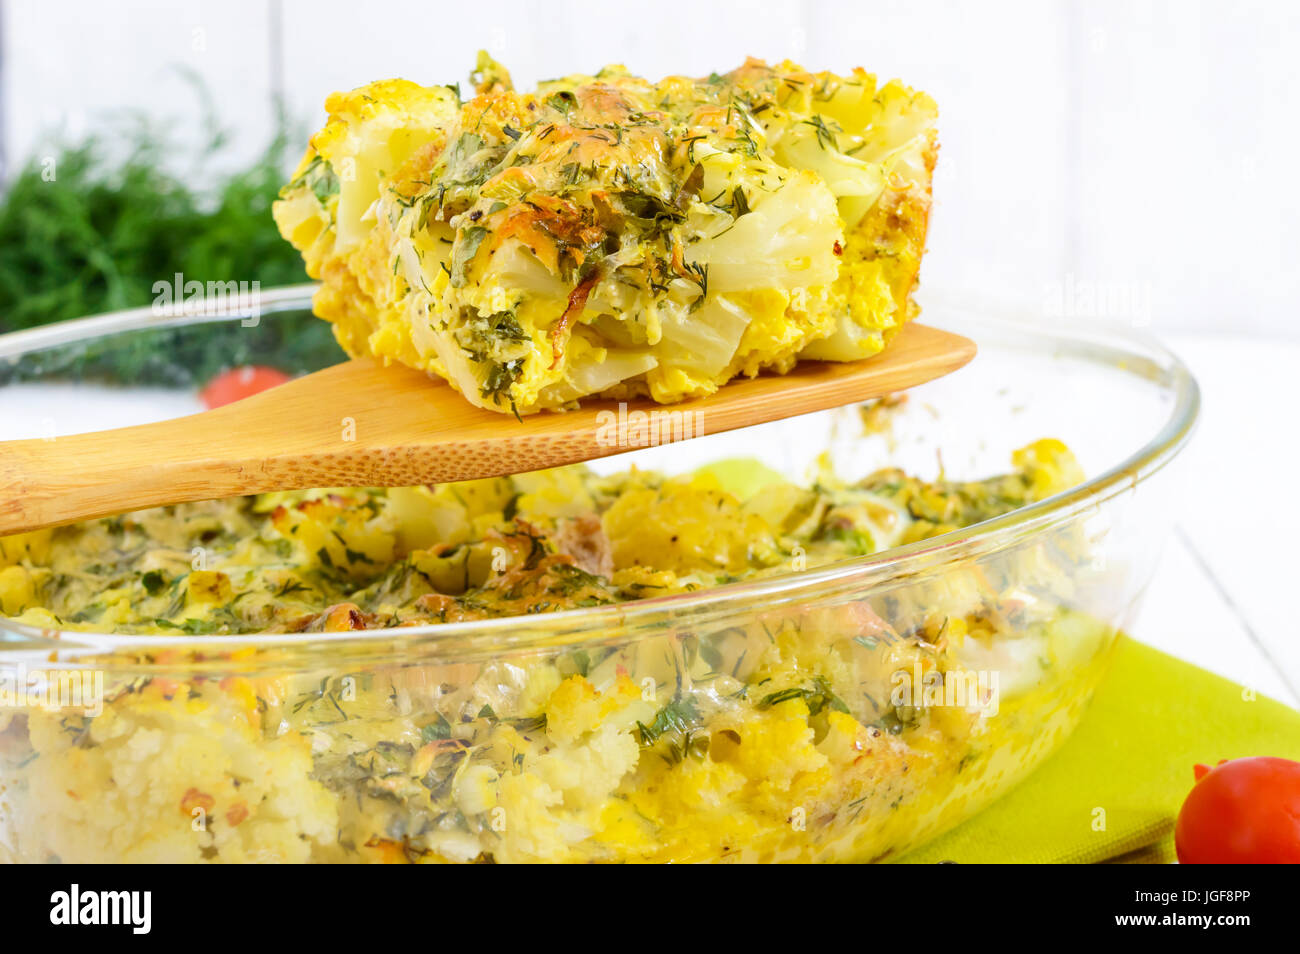 Baked cauliflower with cheese and egg in a glass form on a white wooden background. A large piece of casserole on - Stock Image